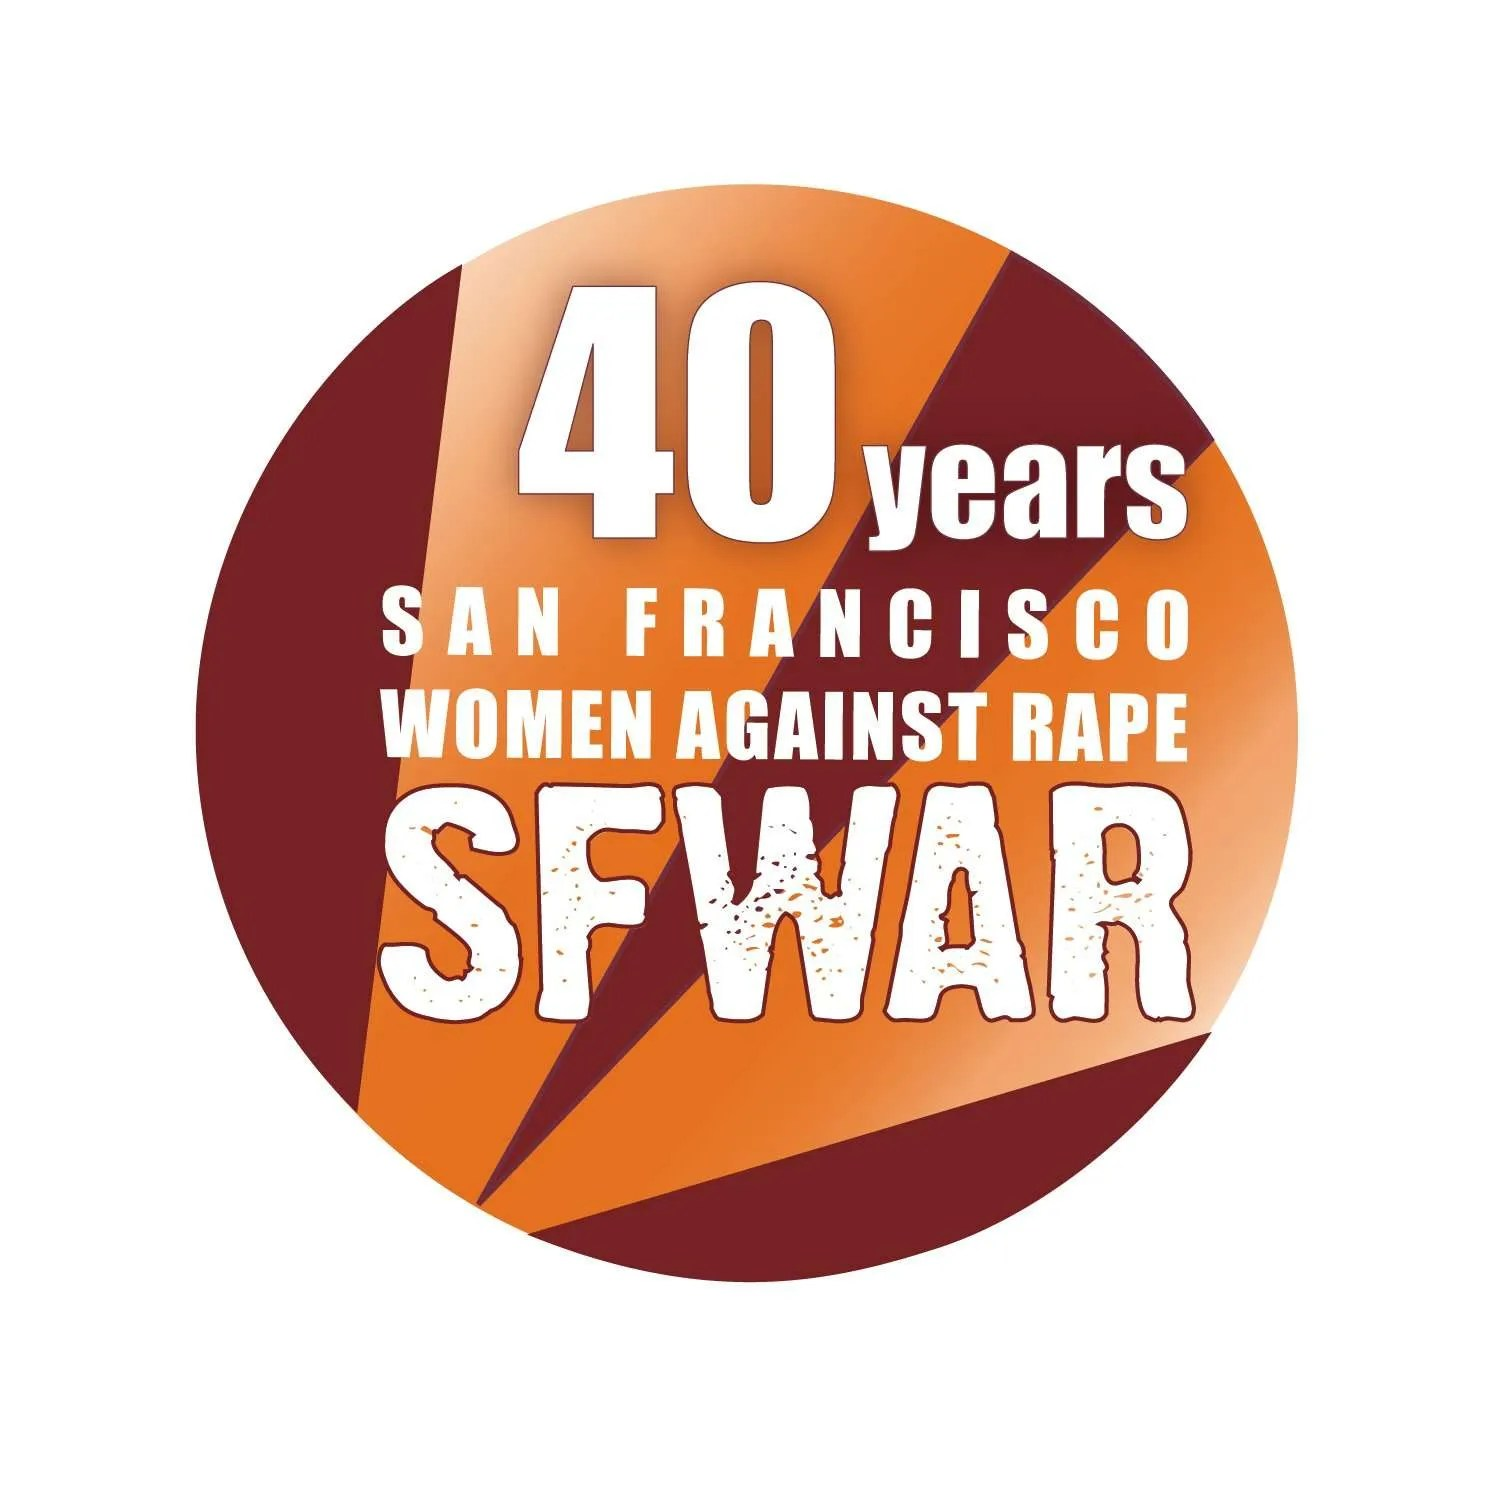 San Francisco Women Against Rape